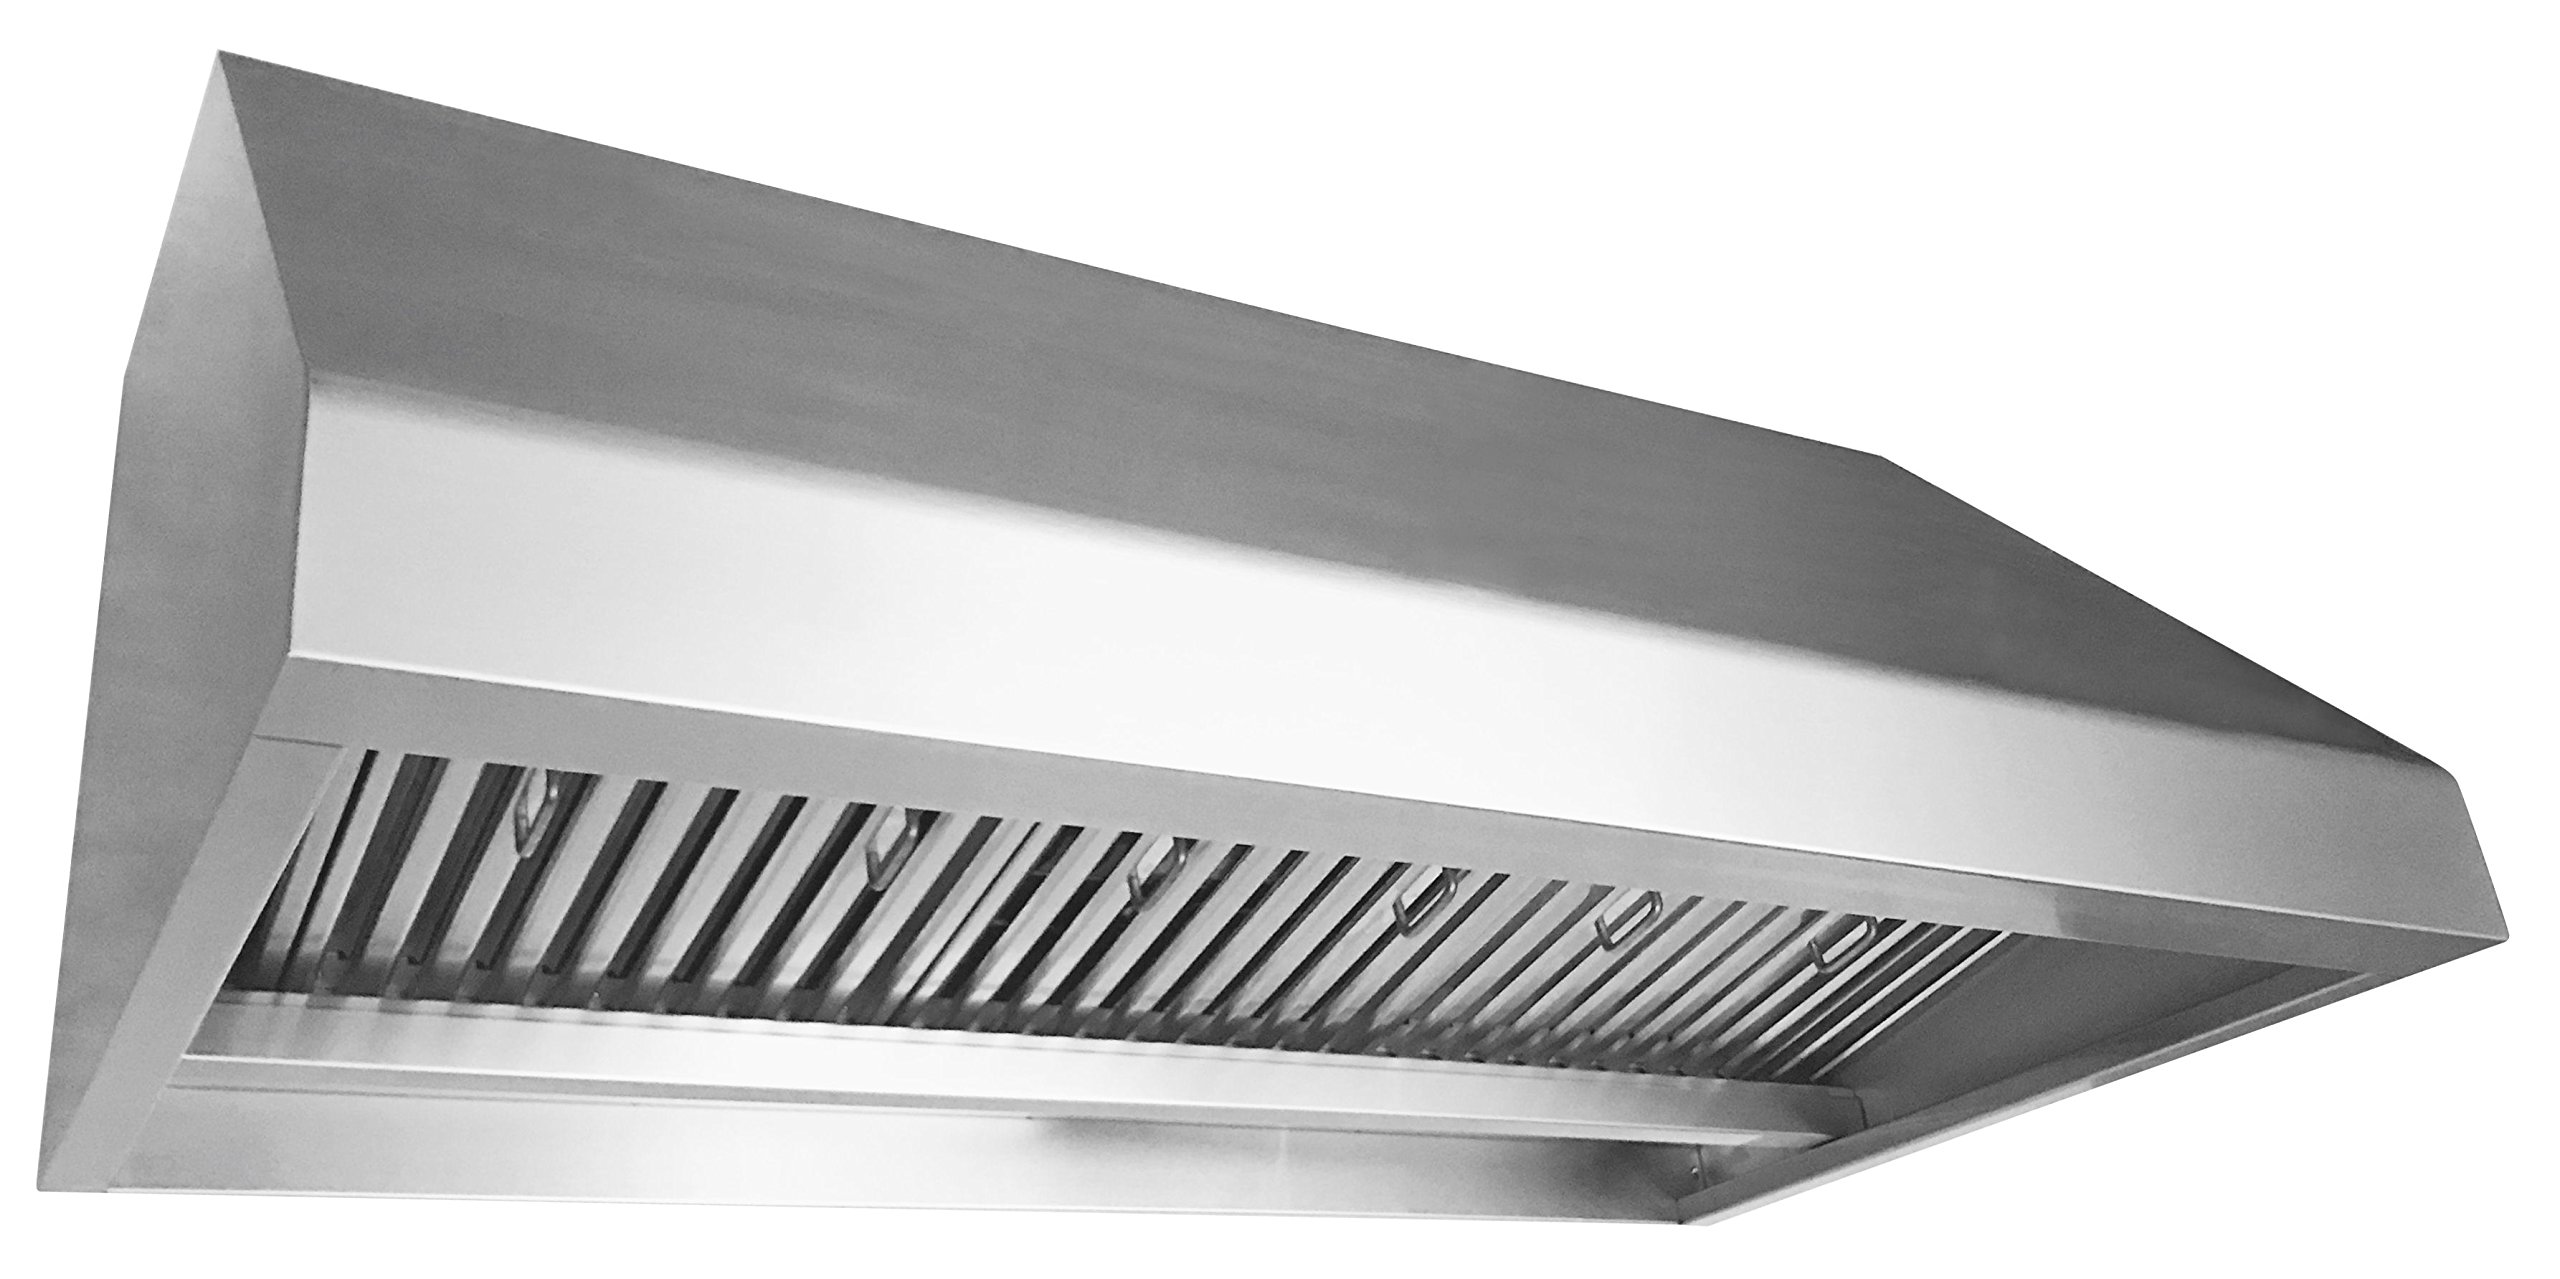 Cycene 42 Inch Professional Series Under Cabinet Stainless Steel Range Hood w/ Baffle Filter @ 1000CFM - CY-RH81PS-42